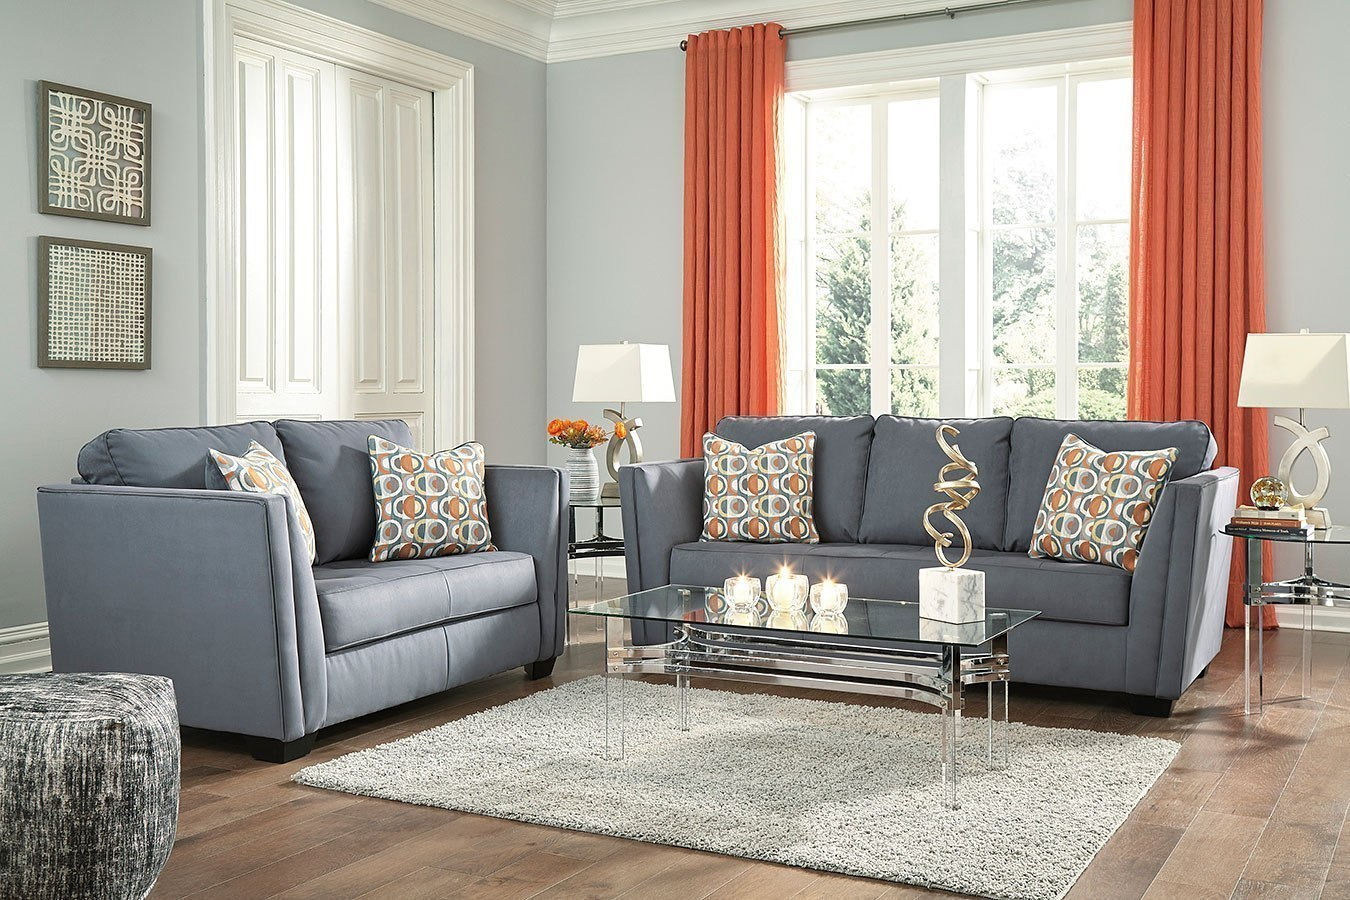 Filone steel living room set